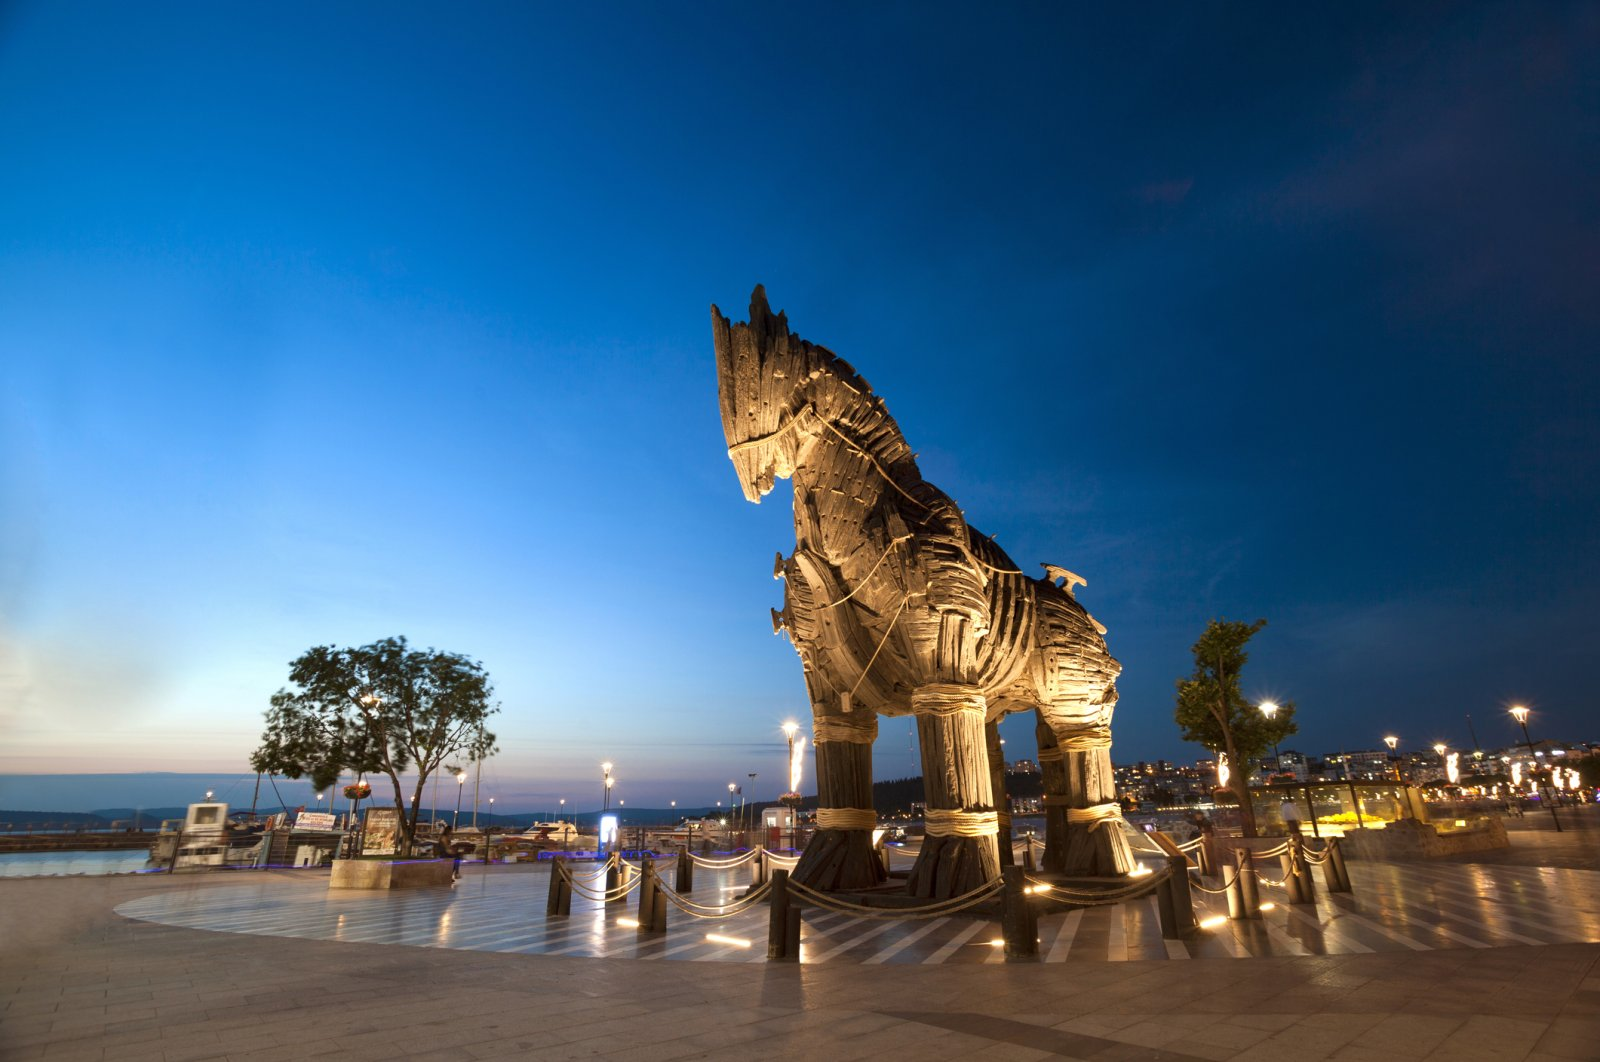 World heritage in Turkey: Troy, the ancient land of war, myth and legend